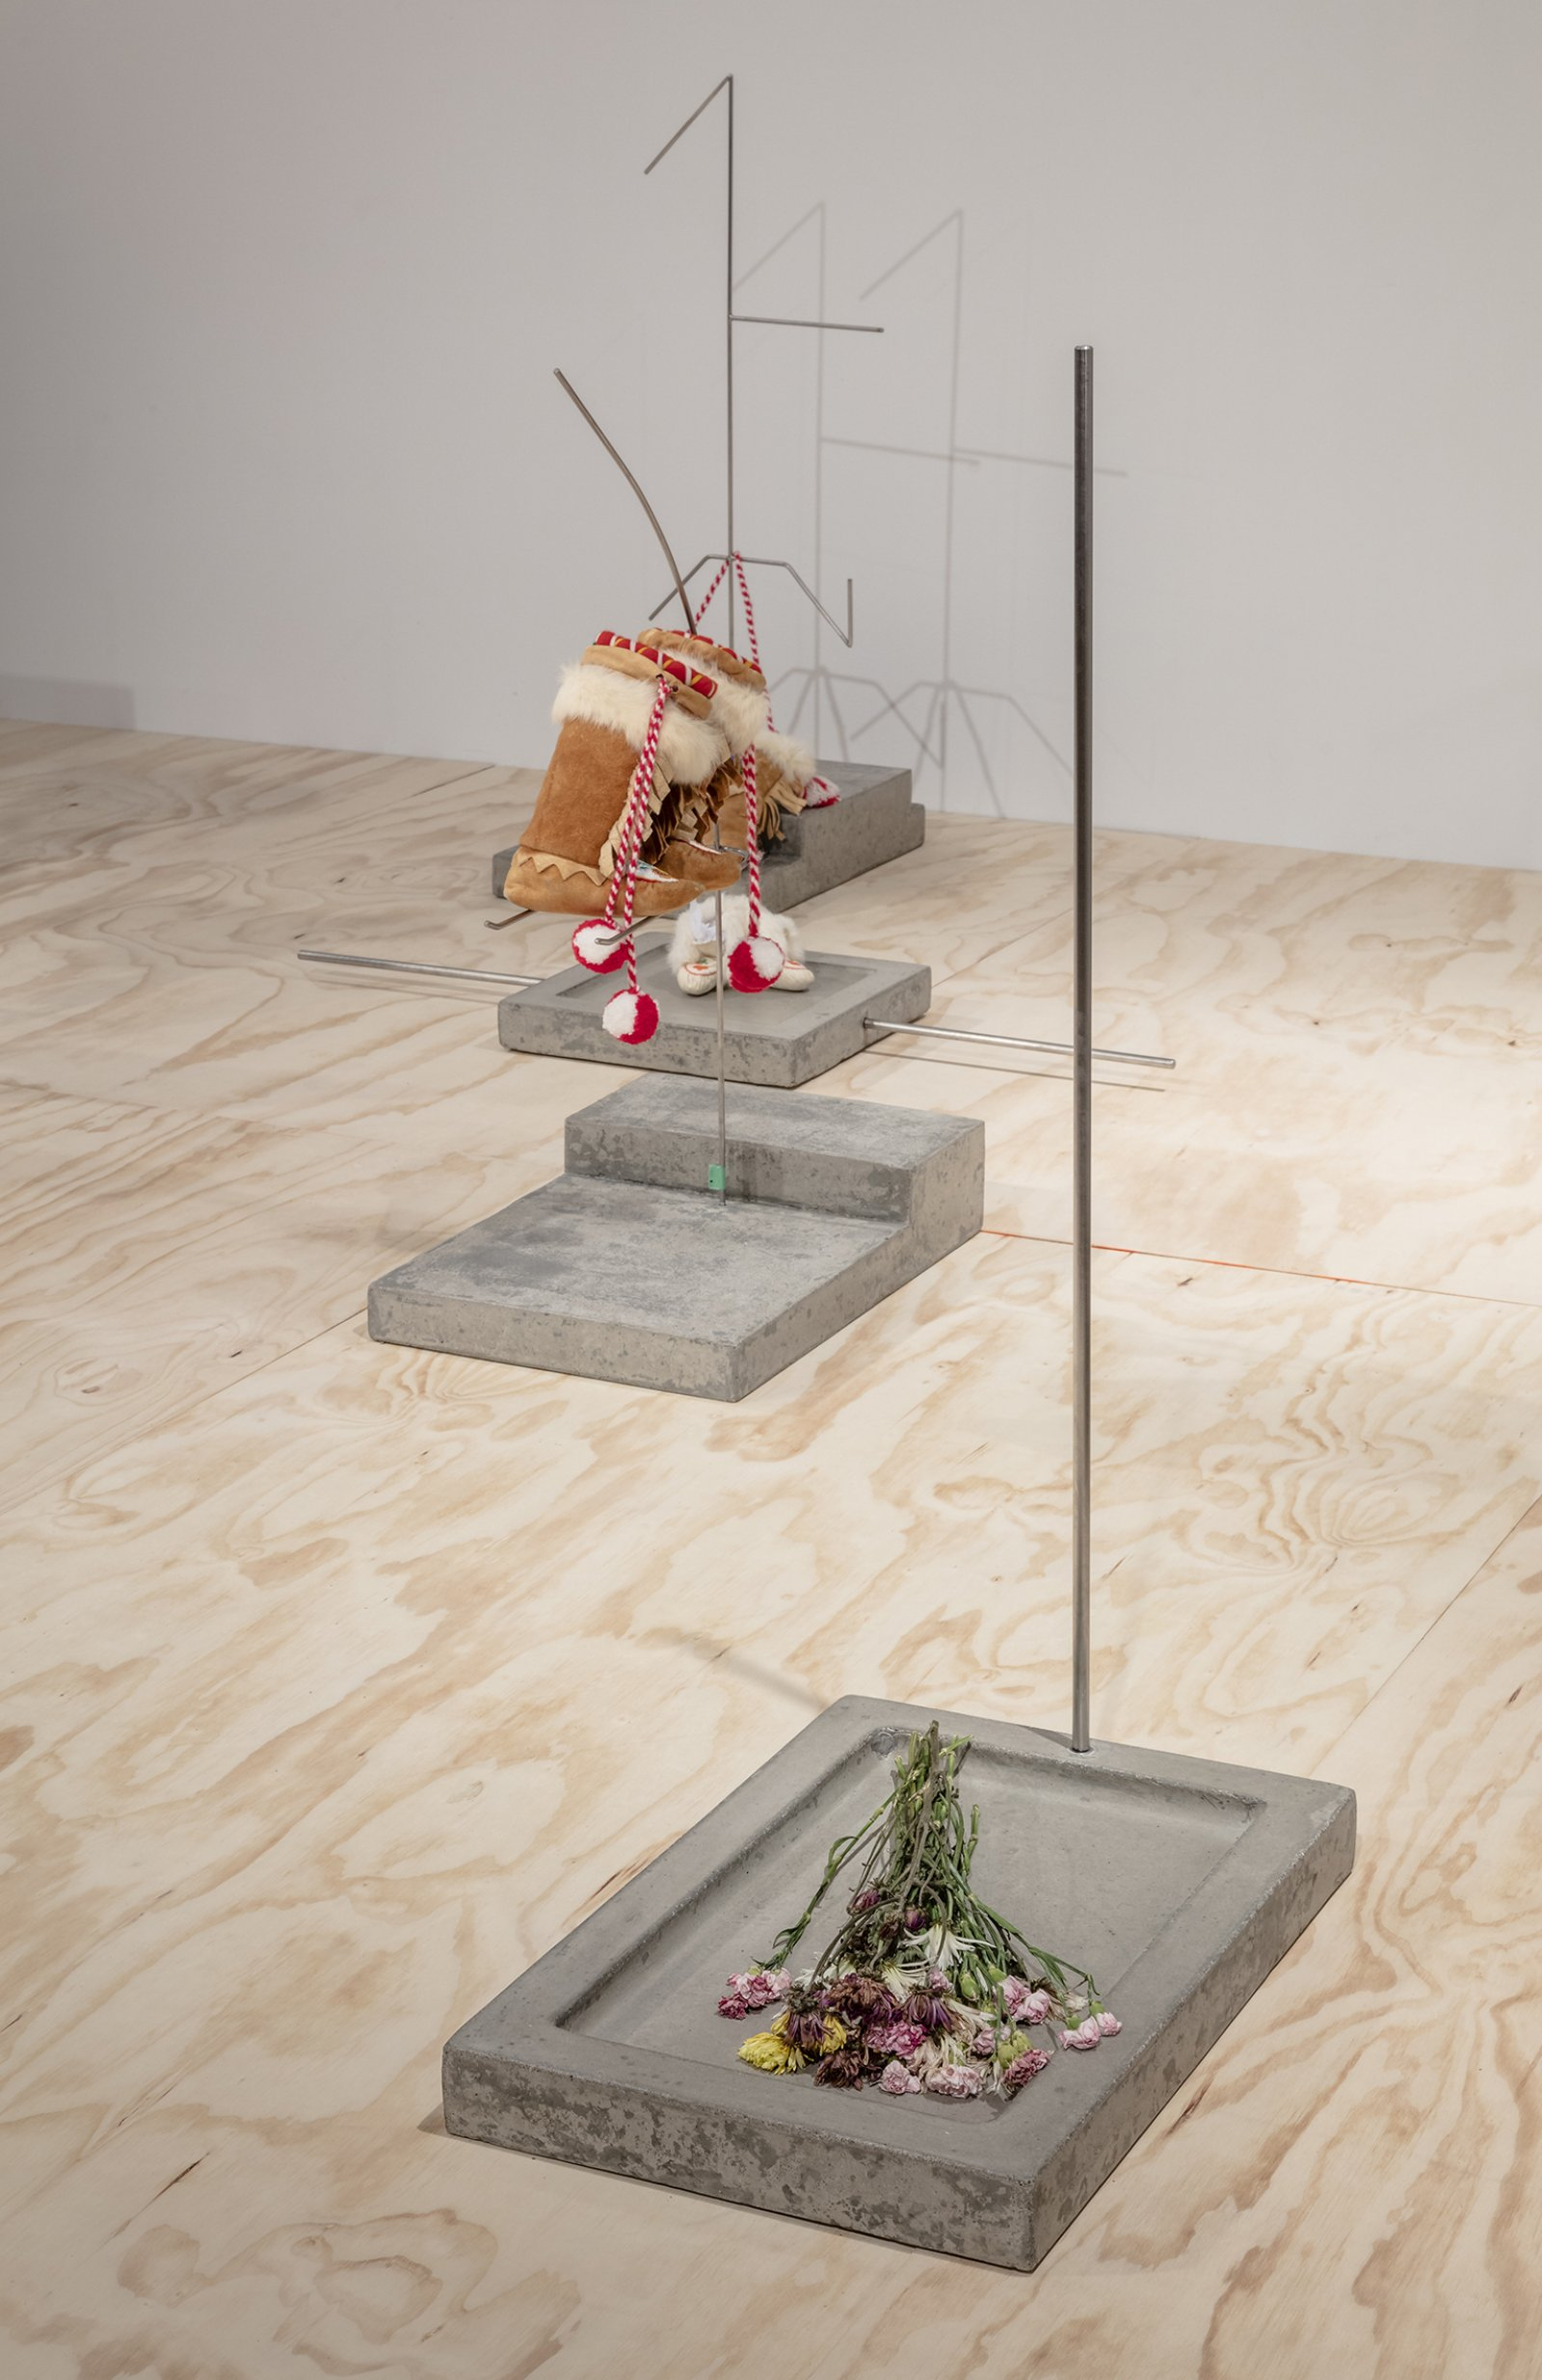 Duane Linklater, Speculative apparatus 7 for the work of nohkompan, 2016, concrete, stainless steel, flowers, 24 x 16 x 43 in. (61 x 41 x 109 cm)